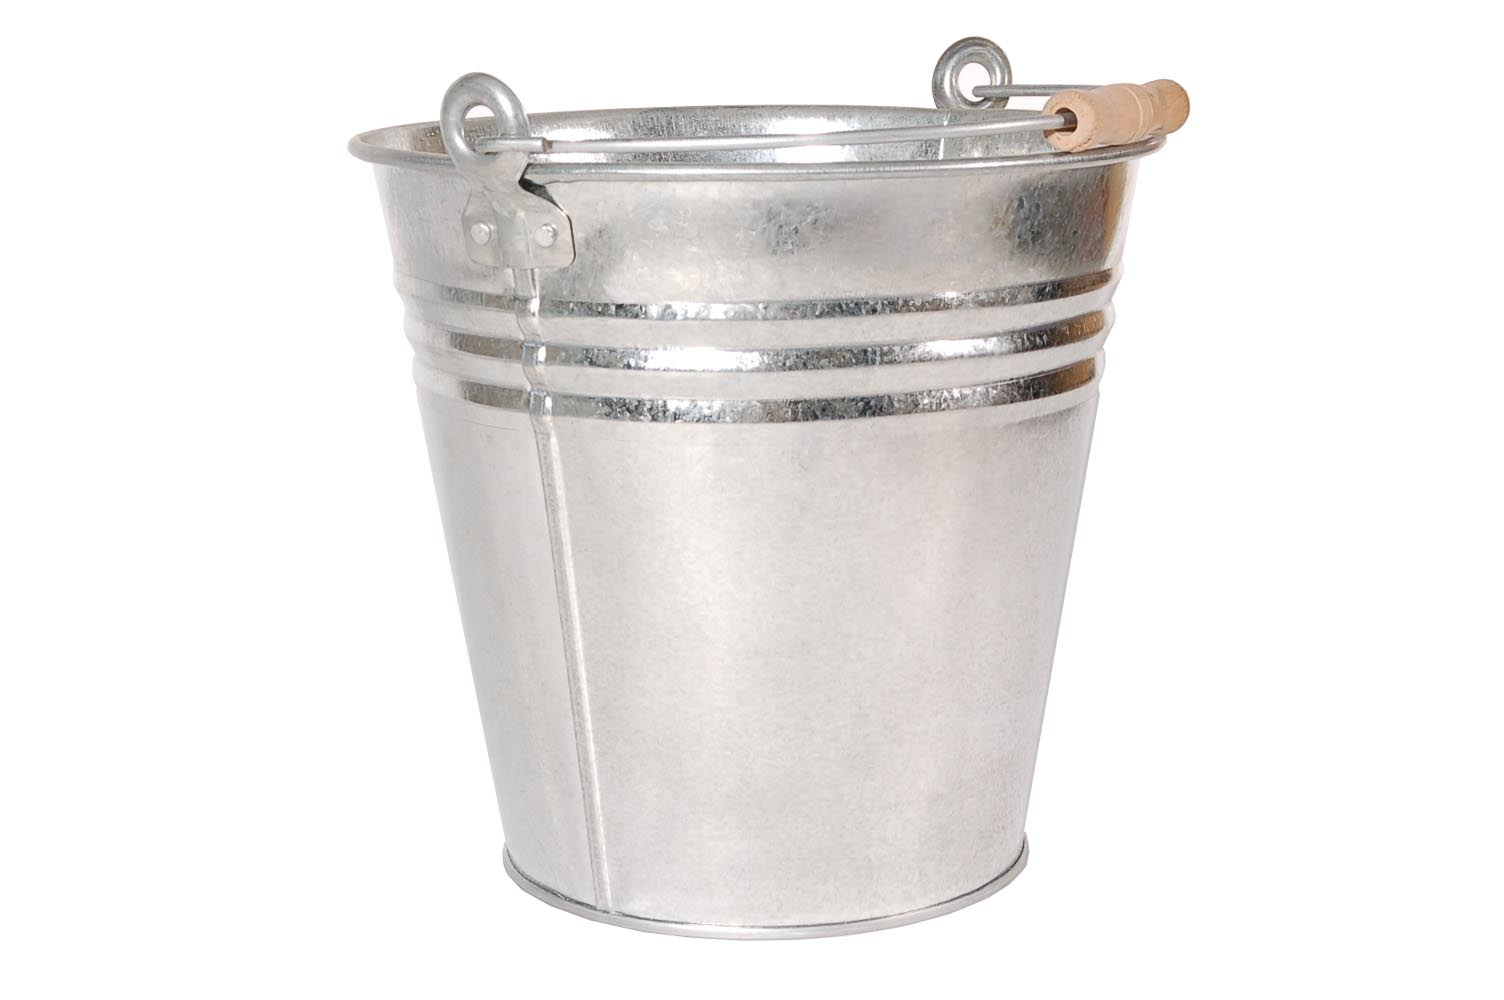 10 LITRE HEAVY DUTY GALVANISED METAL BUCKET COAL ASH KINDLING